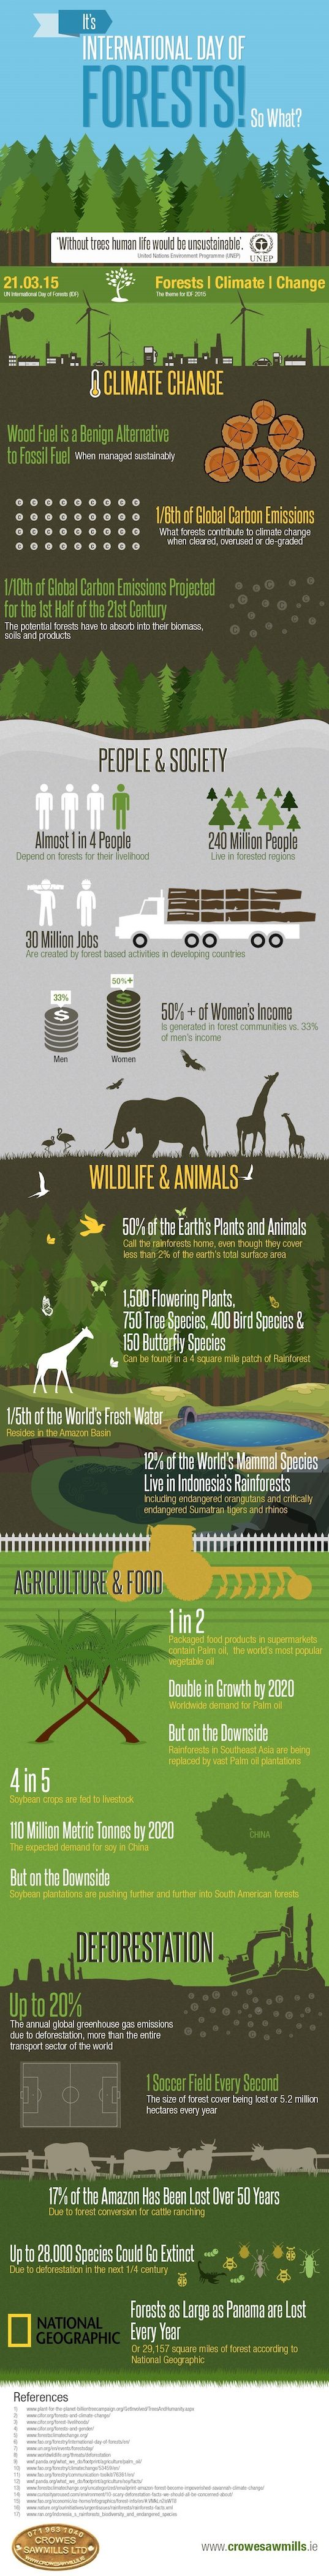 International Day of Forests, infographic, reader submitted content, Crowes Sawmills Ltd, forest facts, forests, trees, deforestation, climate change,